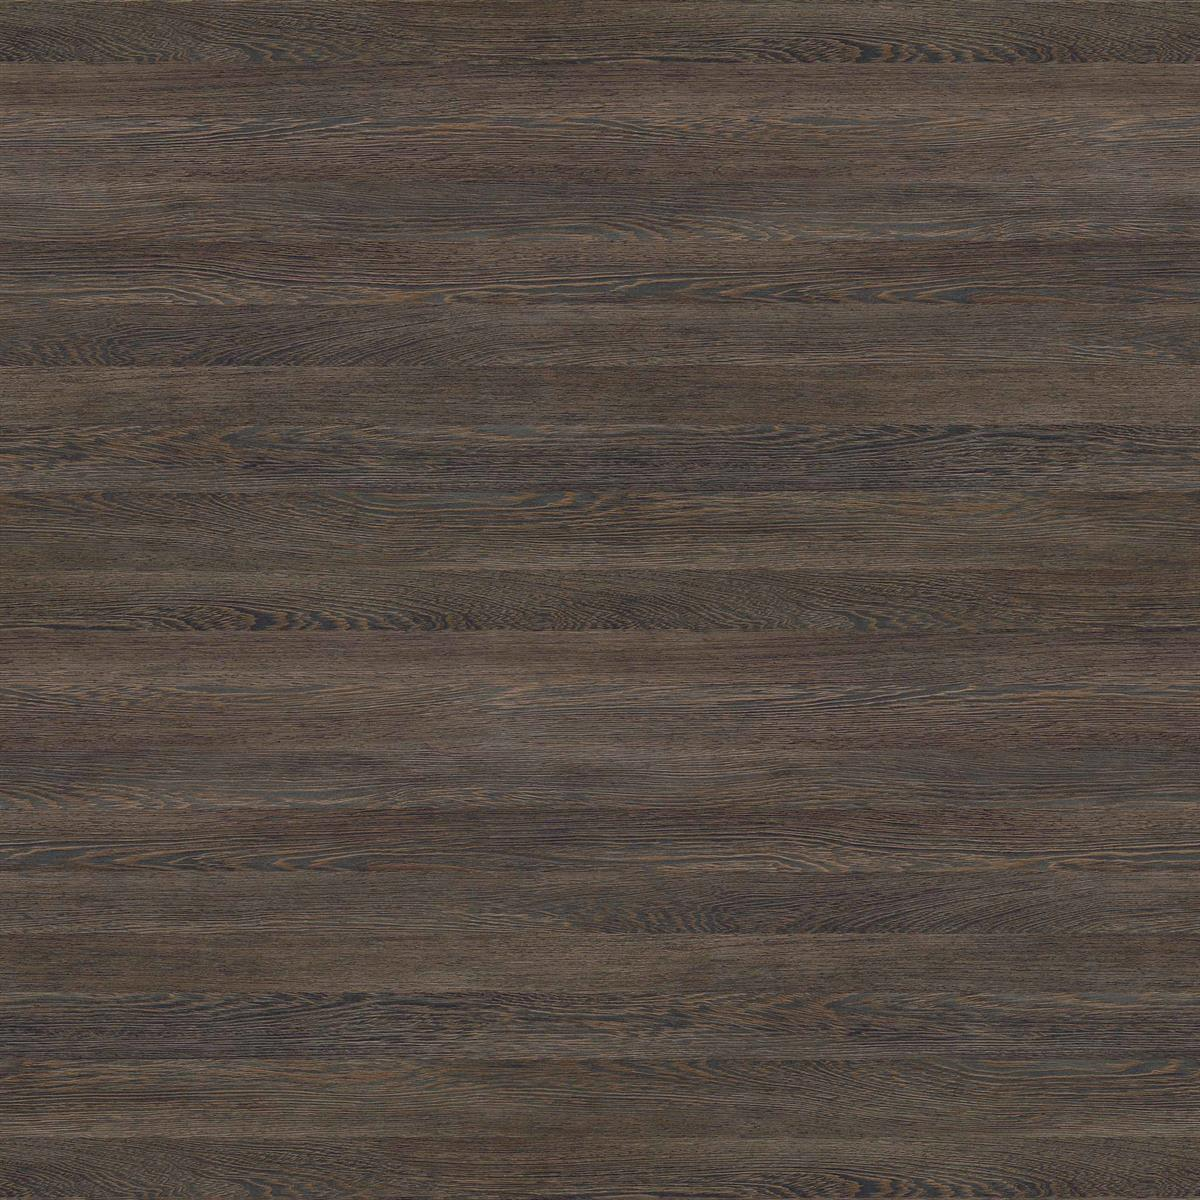 Egger Contemporary Mali Wenge kitchen worktop sample.